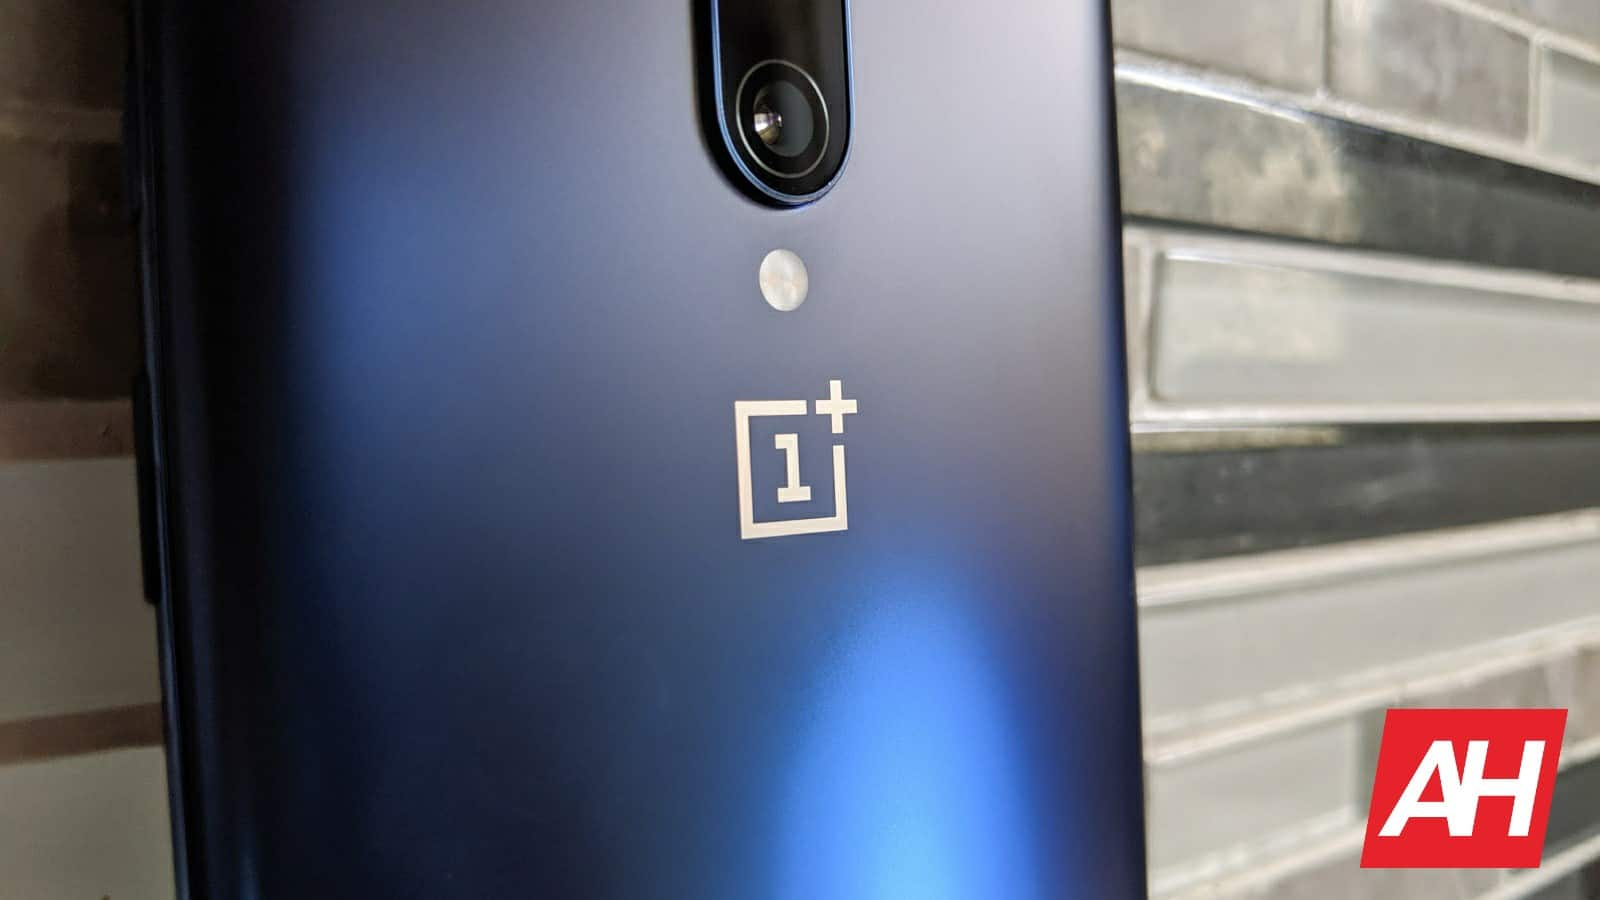 OnePlus 8 Pro Specs: What Doesn't This Phone Have?